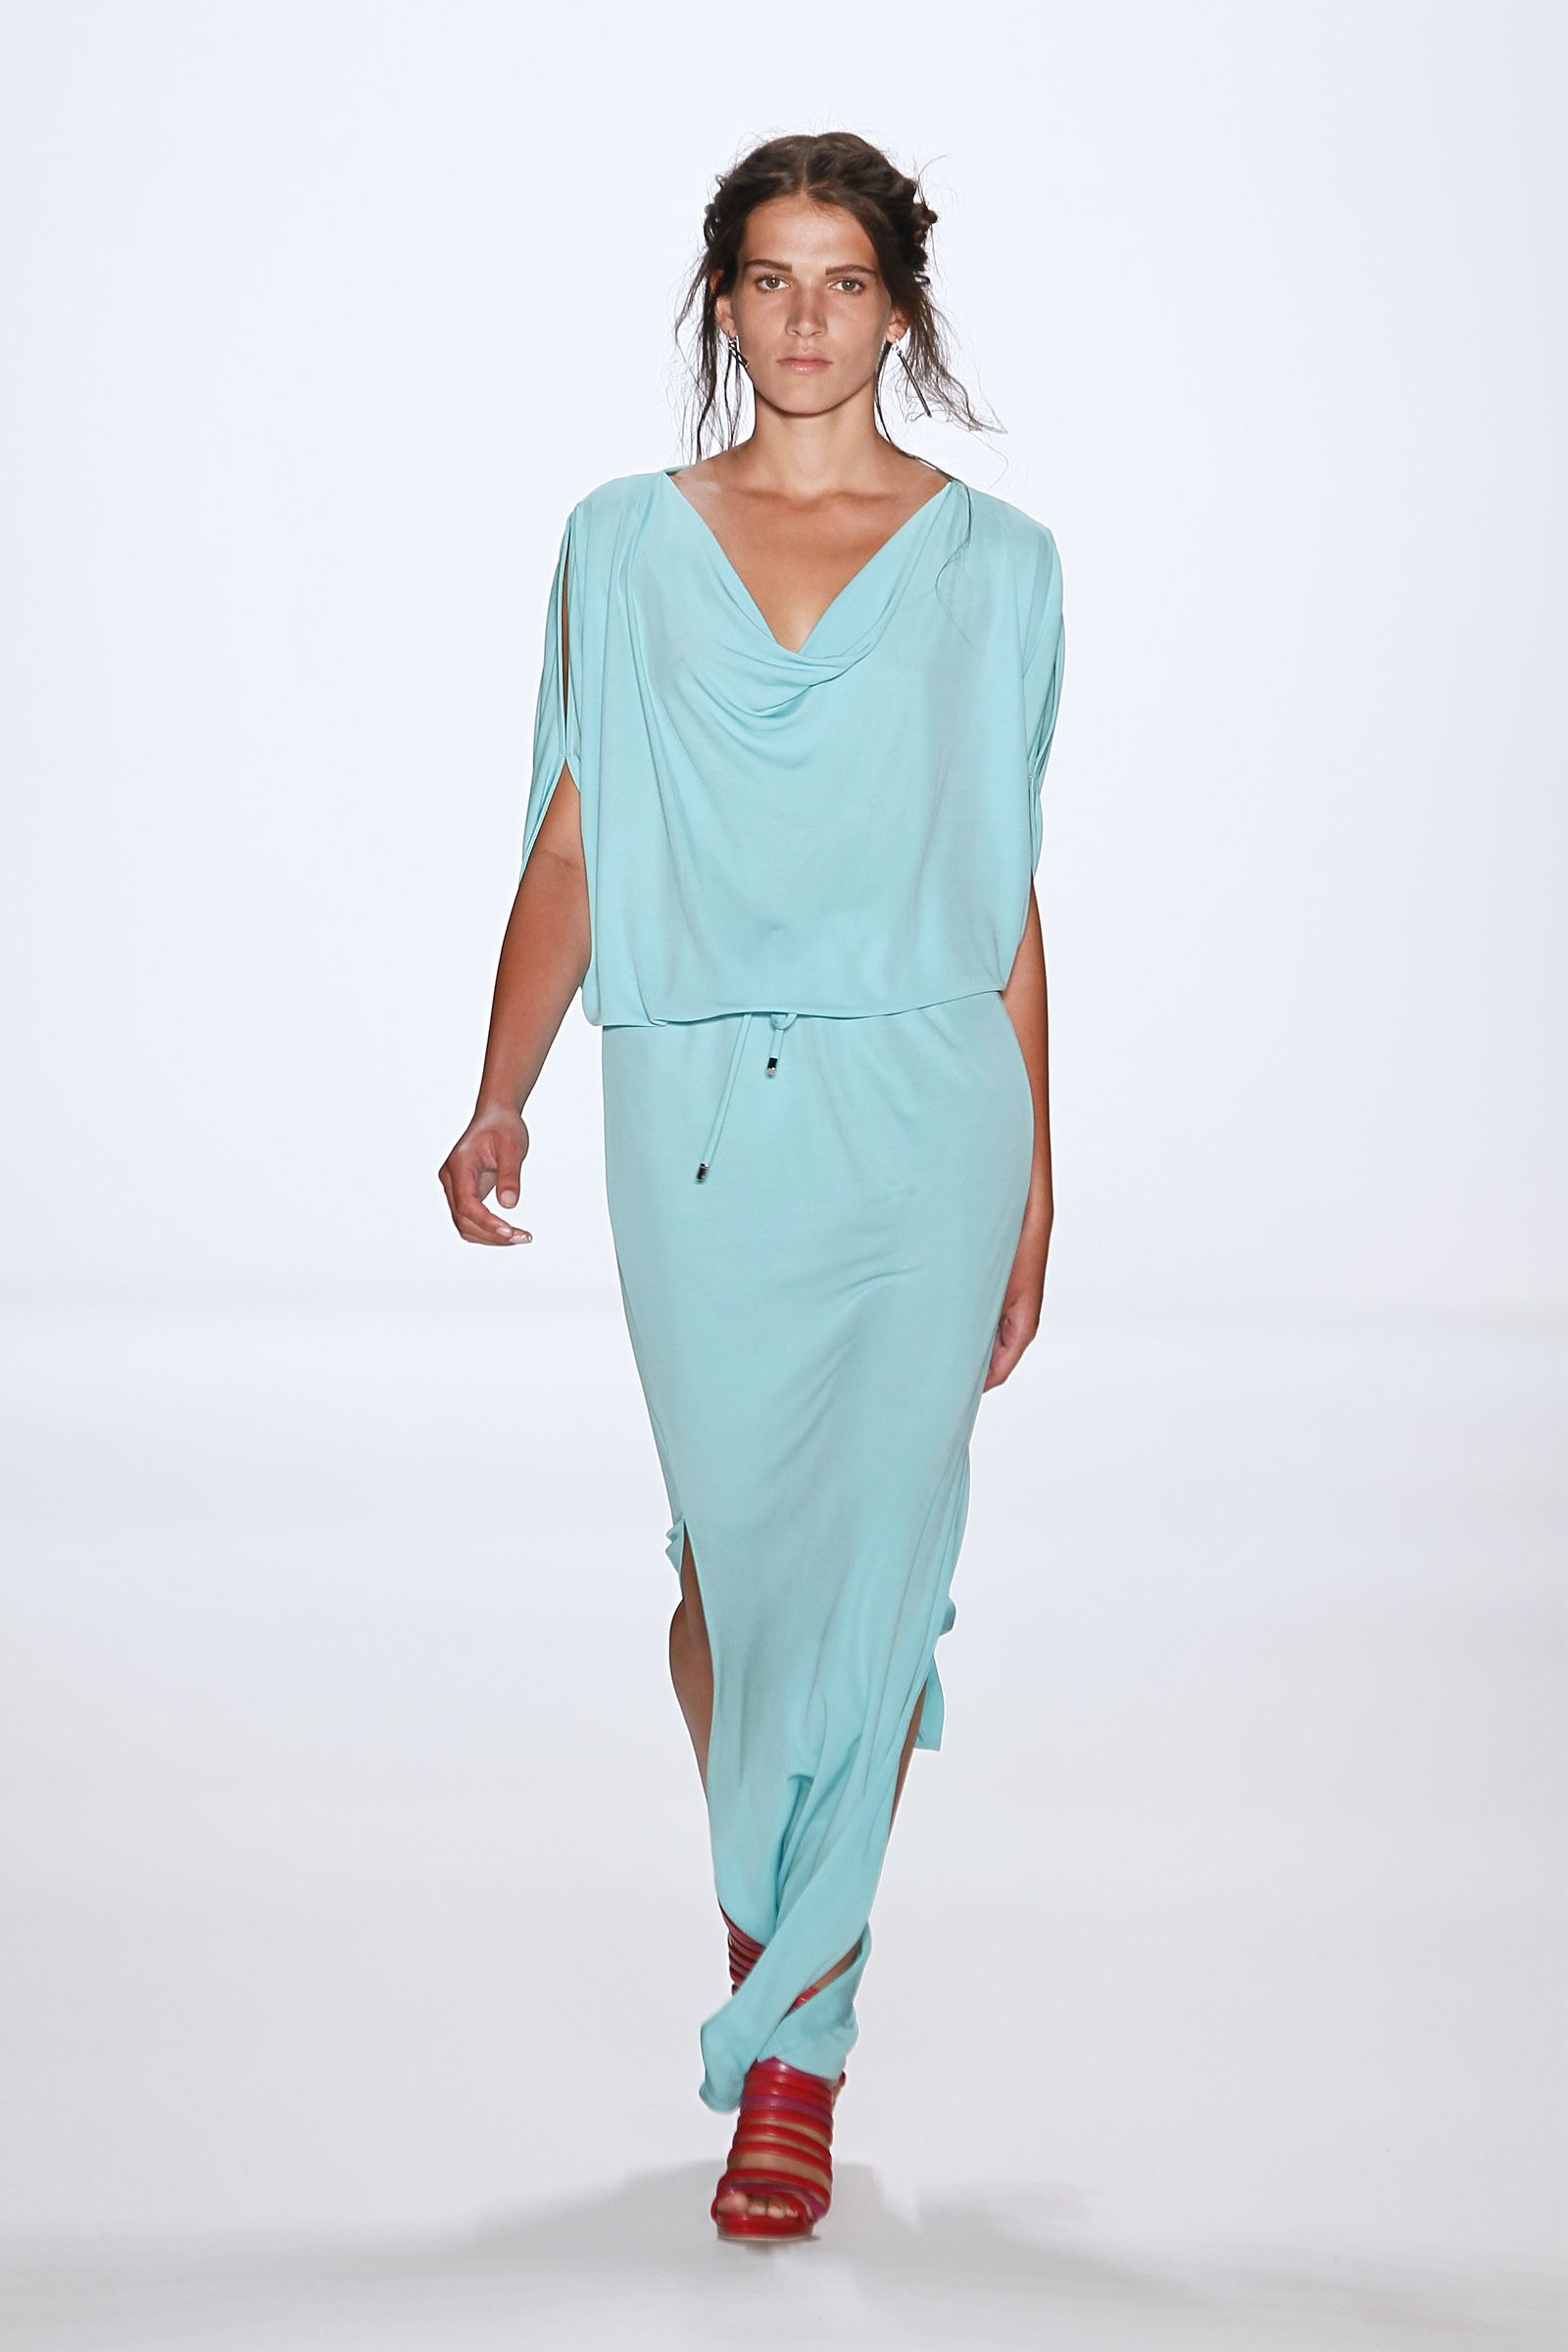 Escada Sport Ss13 Collection Presented On July 4Th During